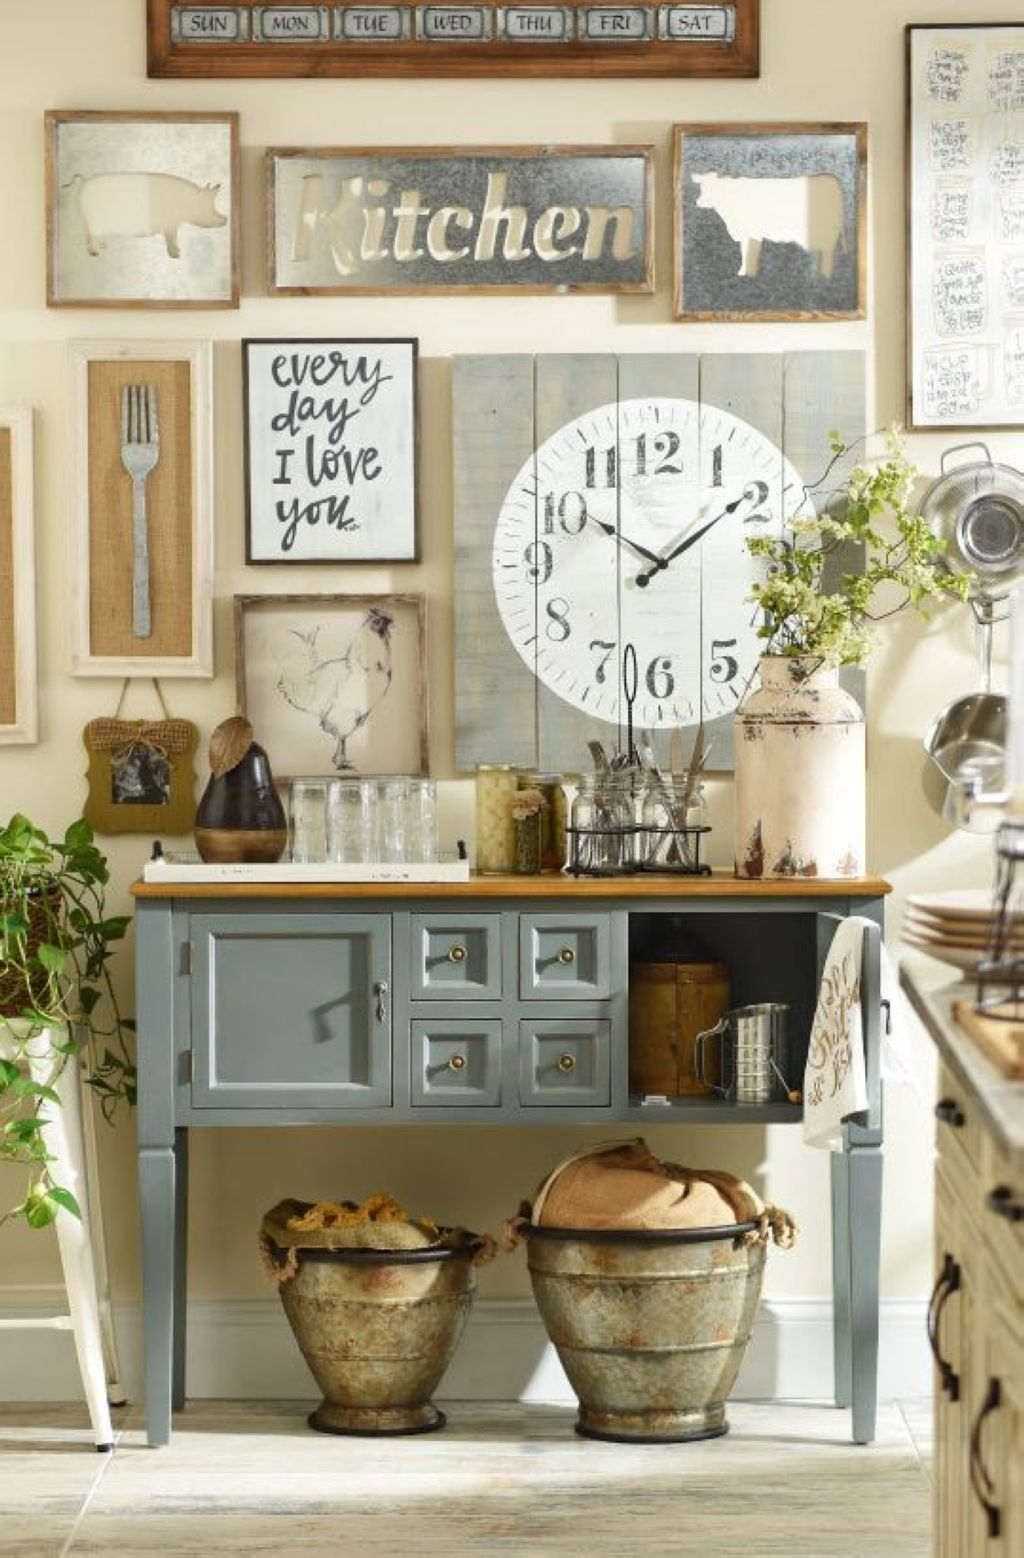 31 diy ideas to add rustic farmhouse feel to your kitchen